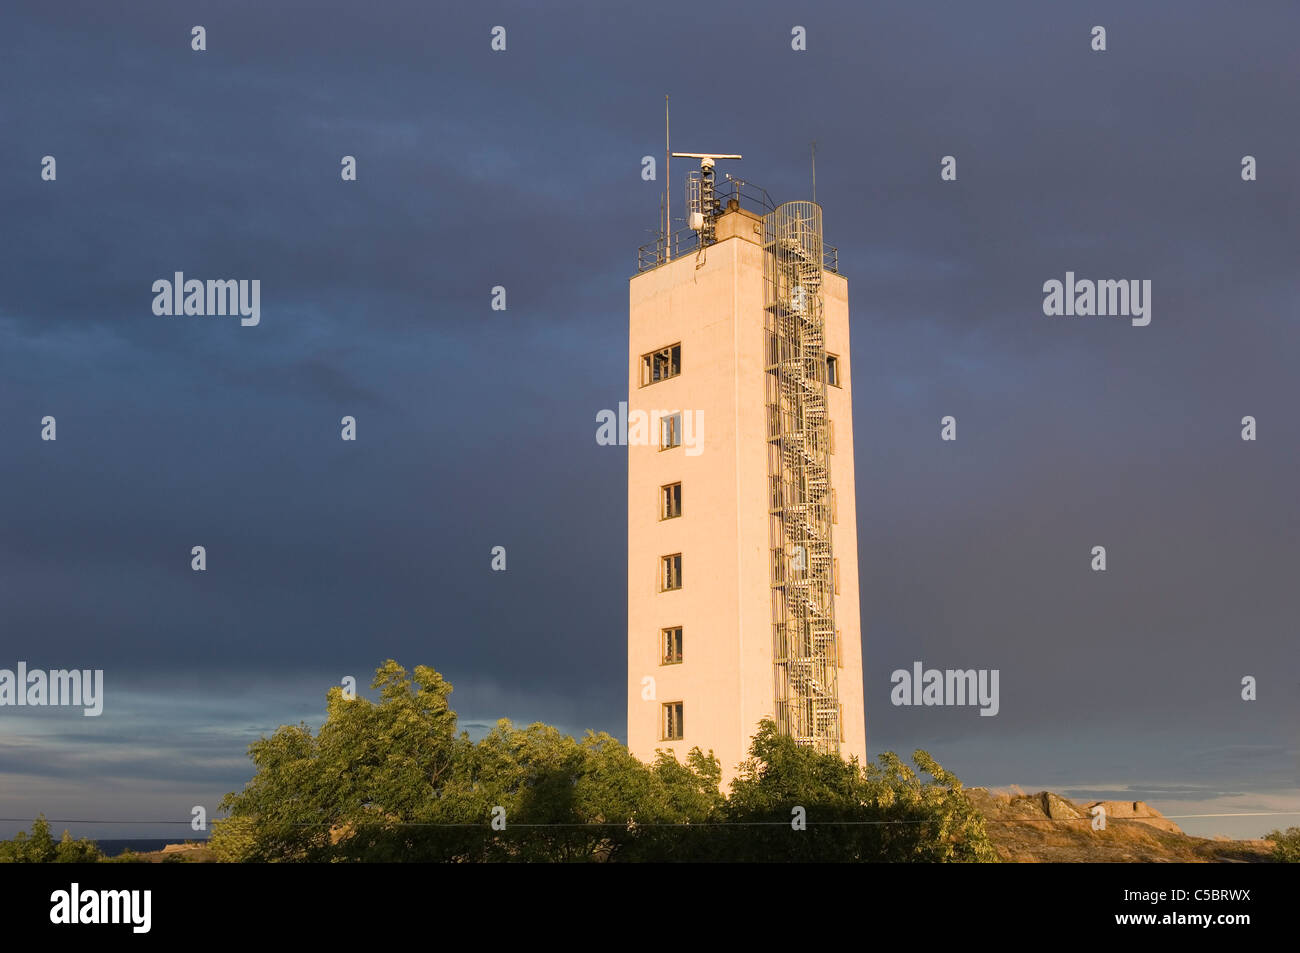 Low angle view of a high-rise building against blue sky - Stock Image